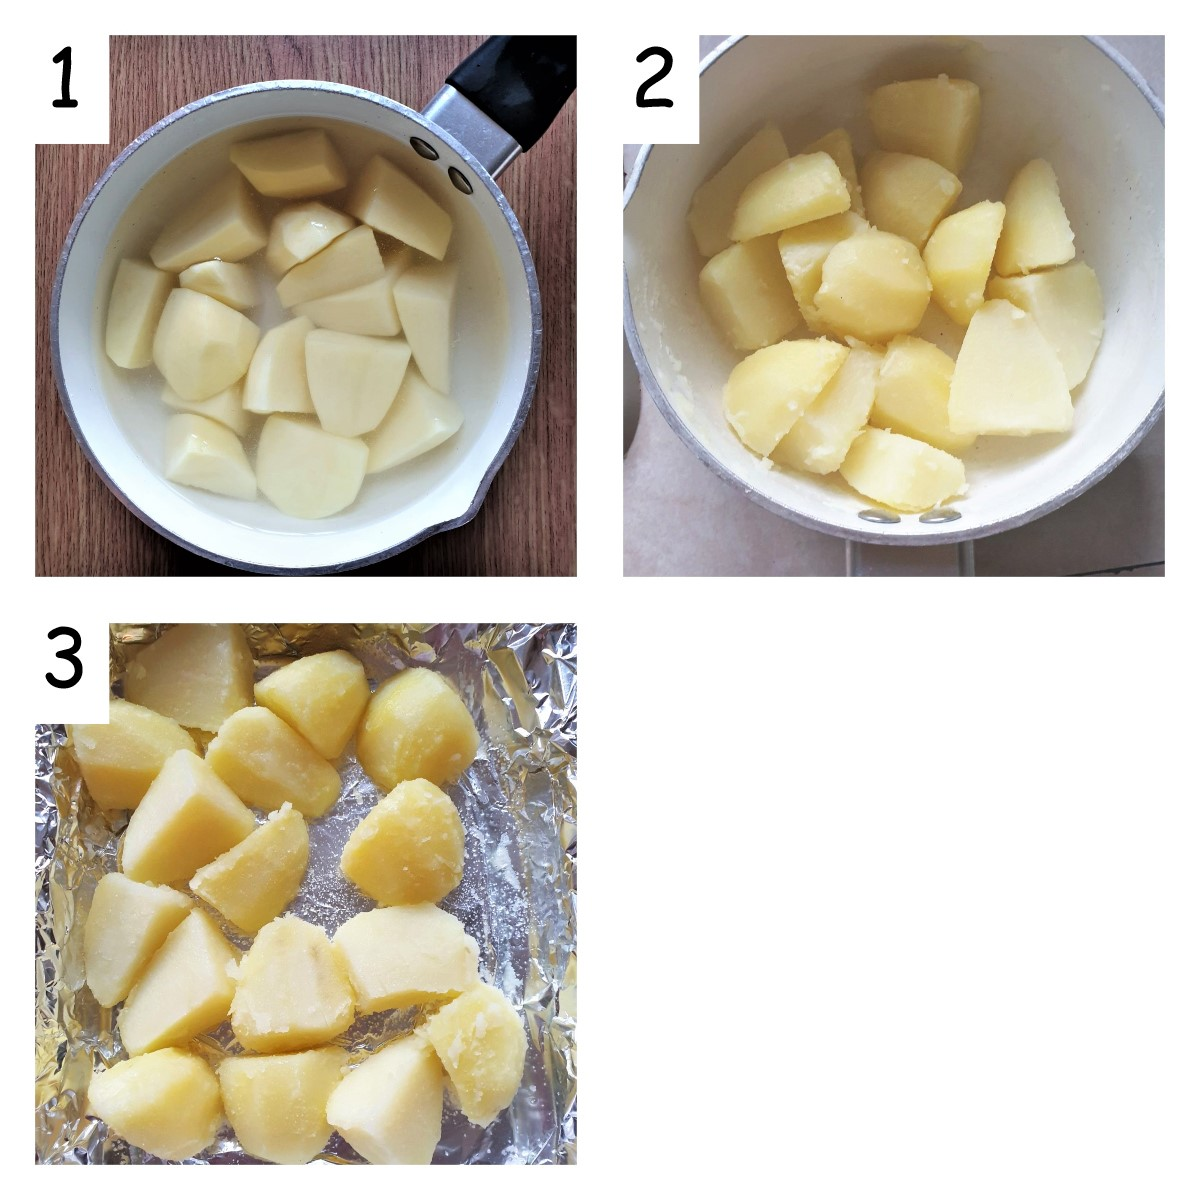 Collage of 3 images showing the stages of making crispy roast potatoes.